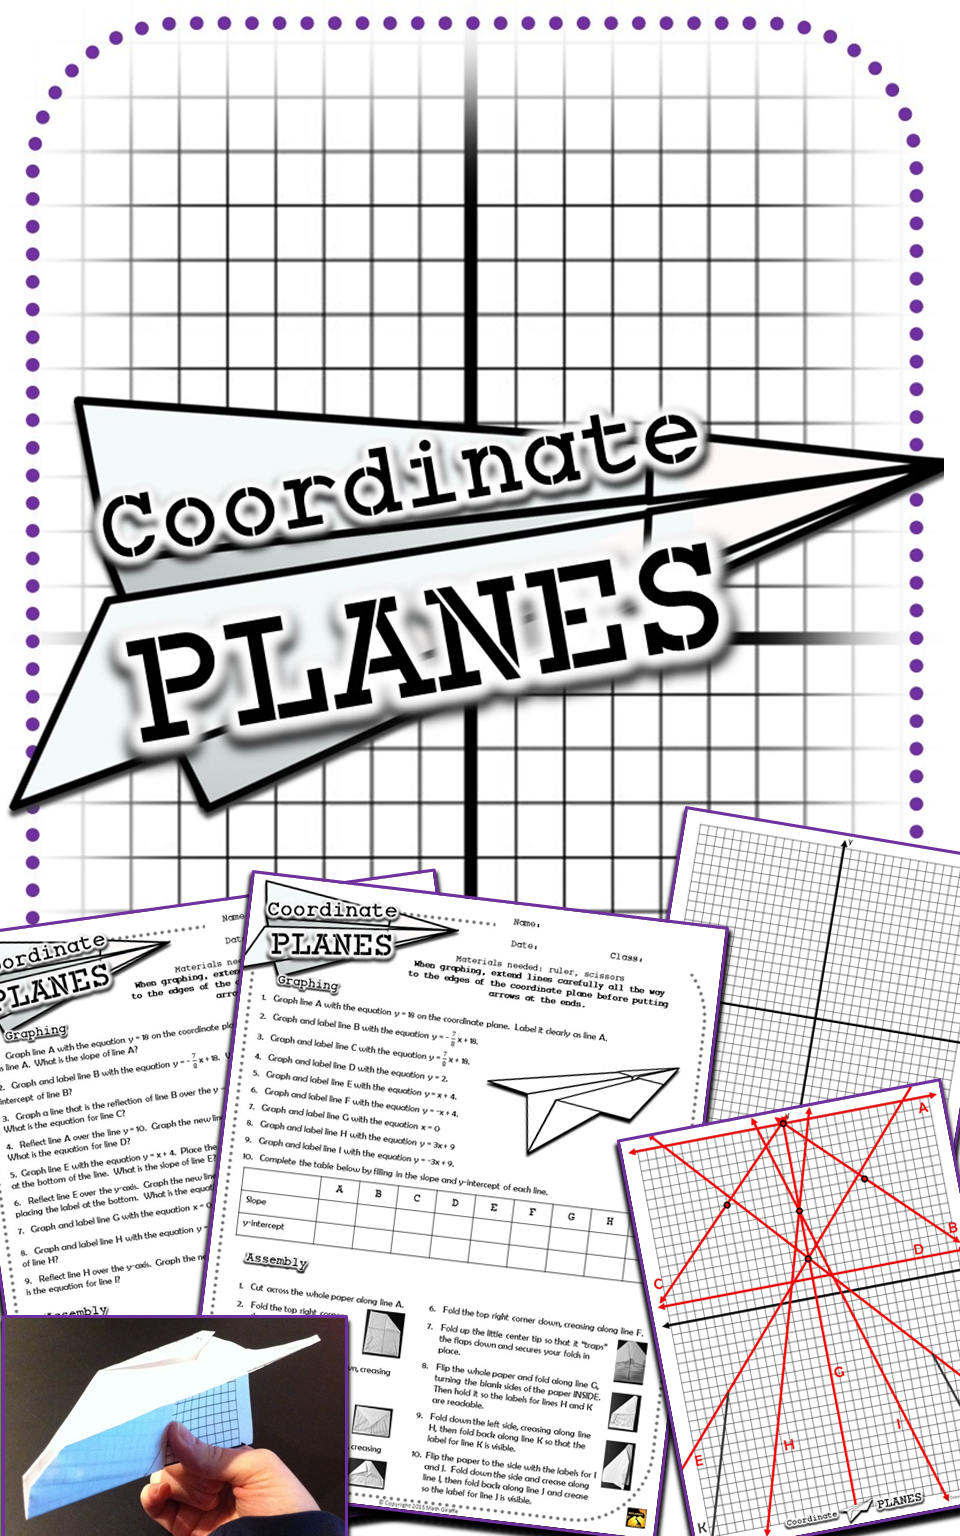 Coordinate PLANES Paper Airplanes from Graphing Linear